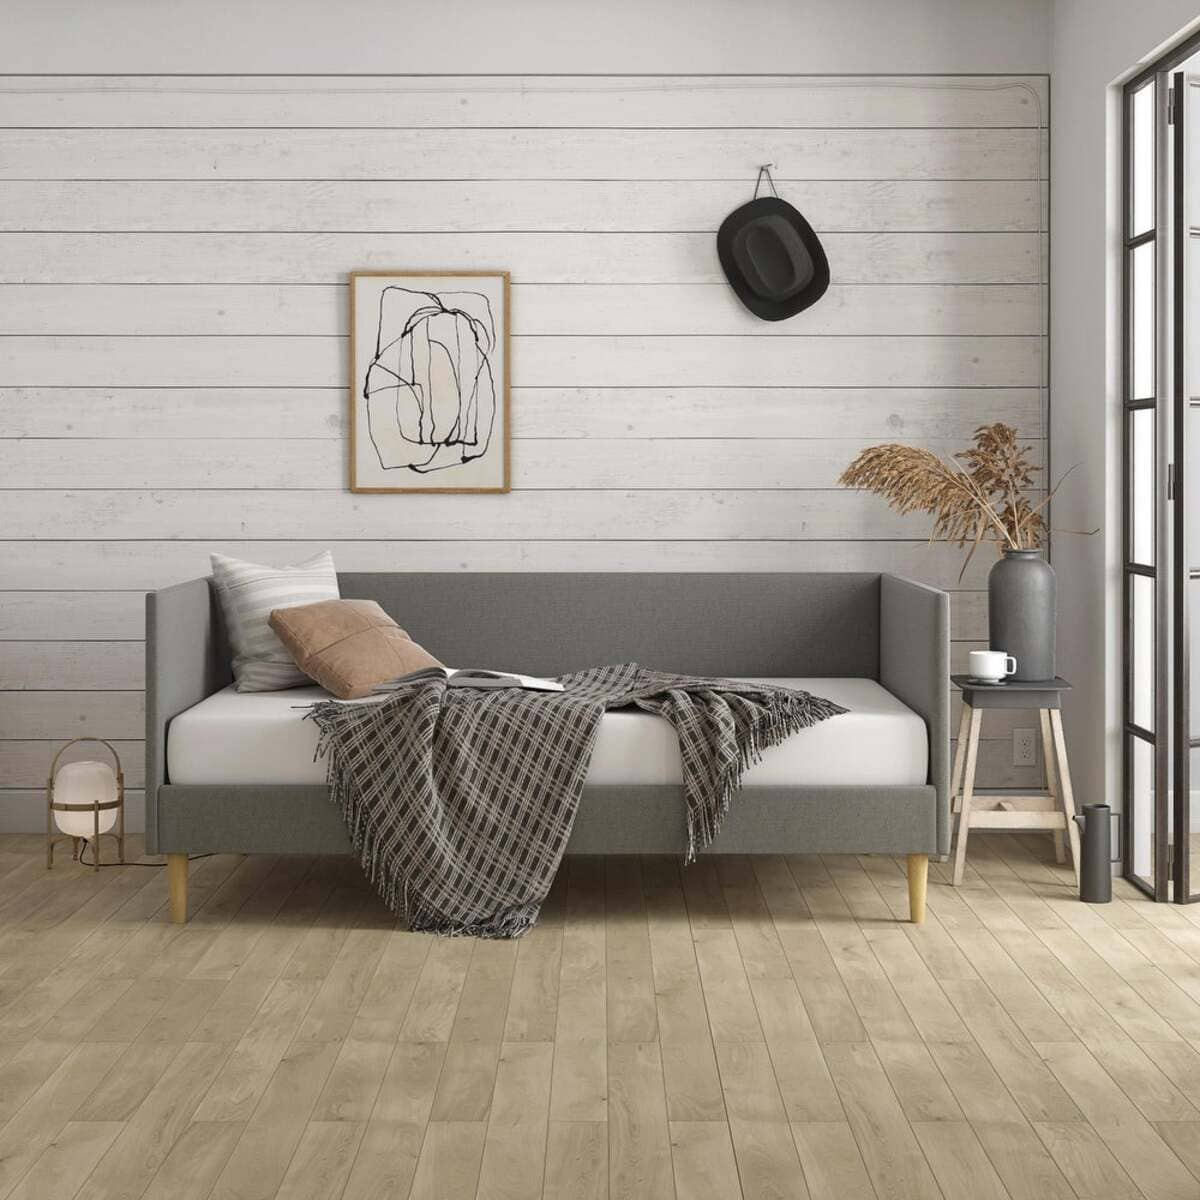 daybed 15 - 20 delightful daybeds that easily convert into comfortable beds